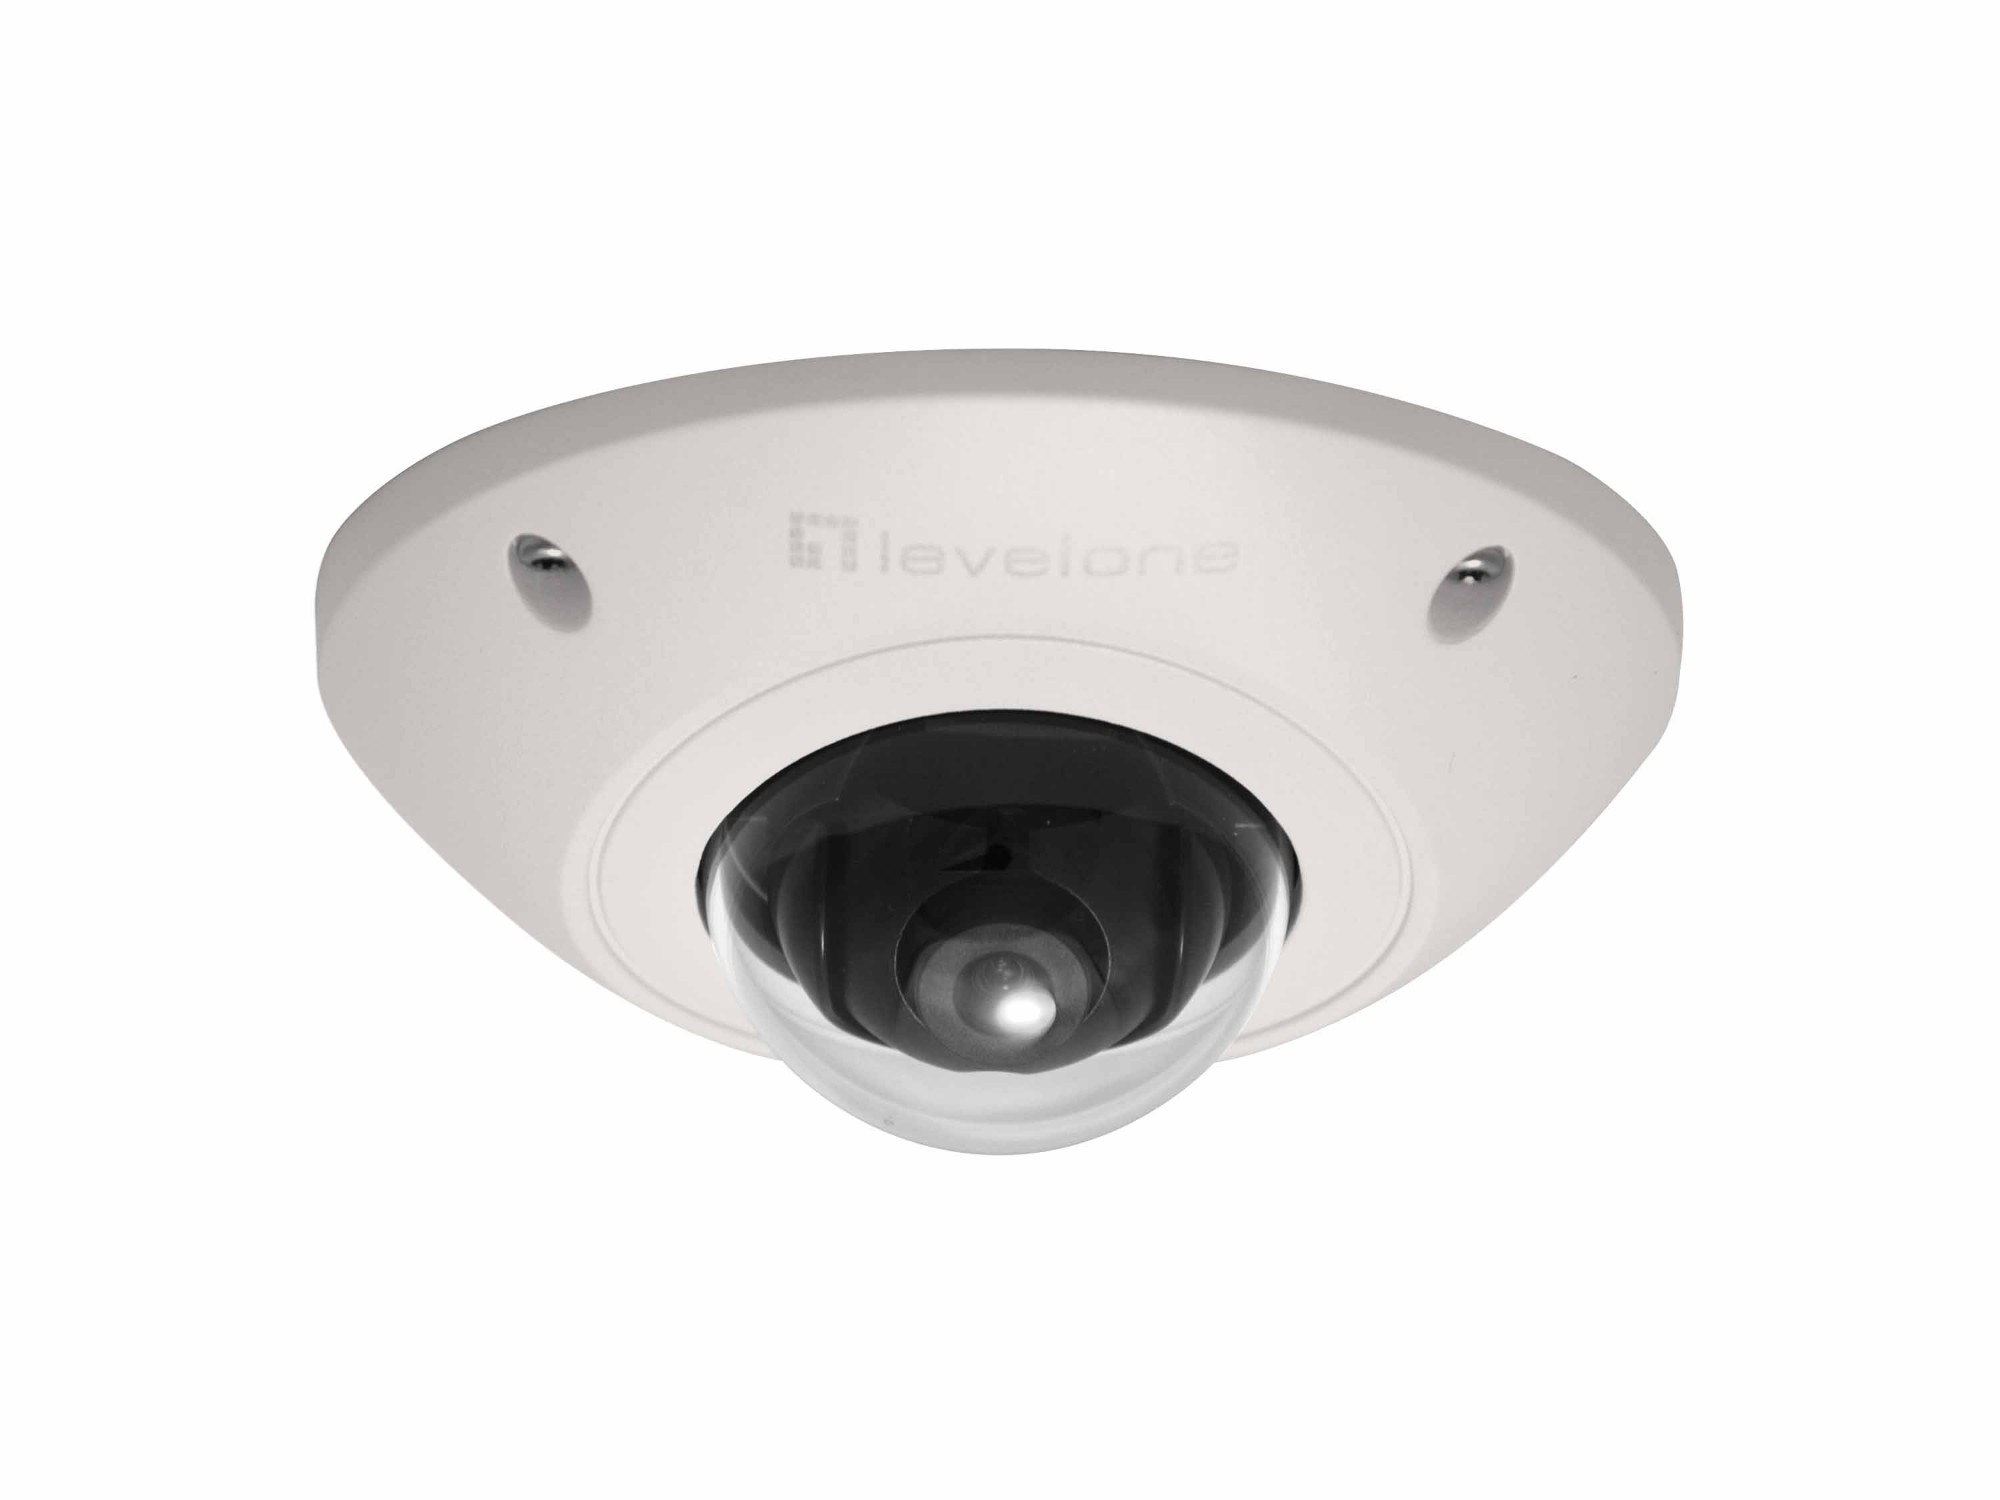 LevelOne FCS-3073 IP security camera Indoor & outdoor Dome Ceiling 1920 x 1080 pixels